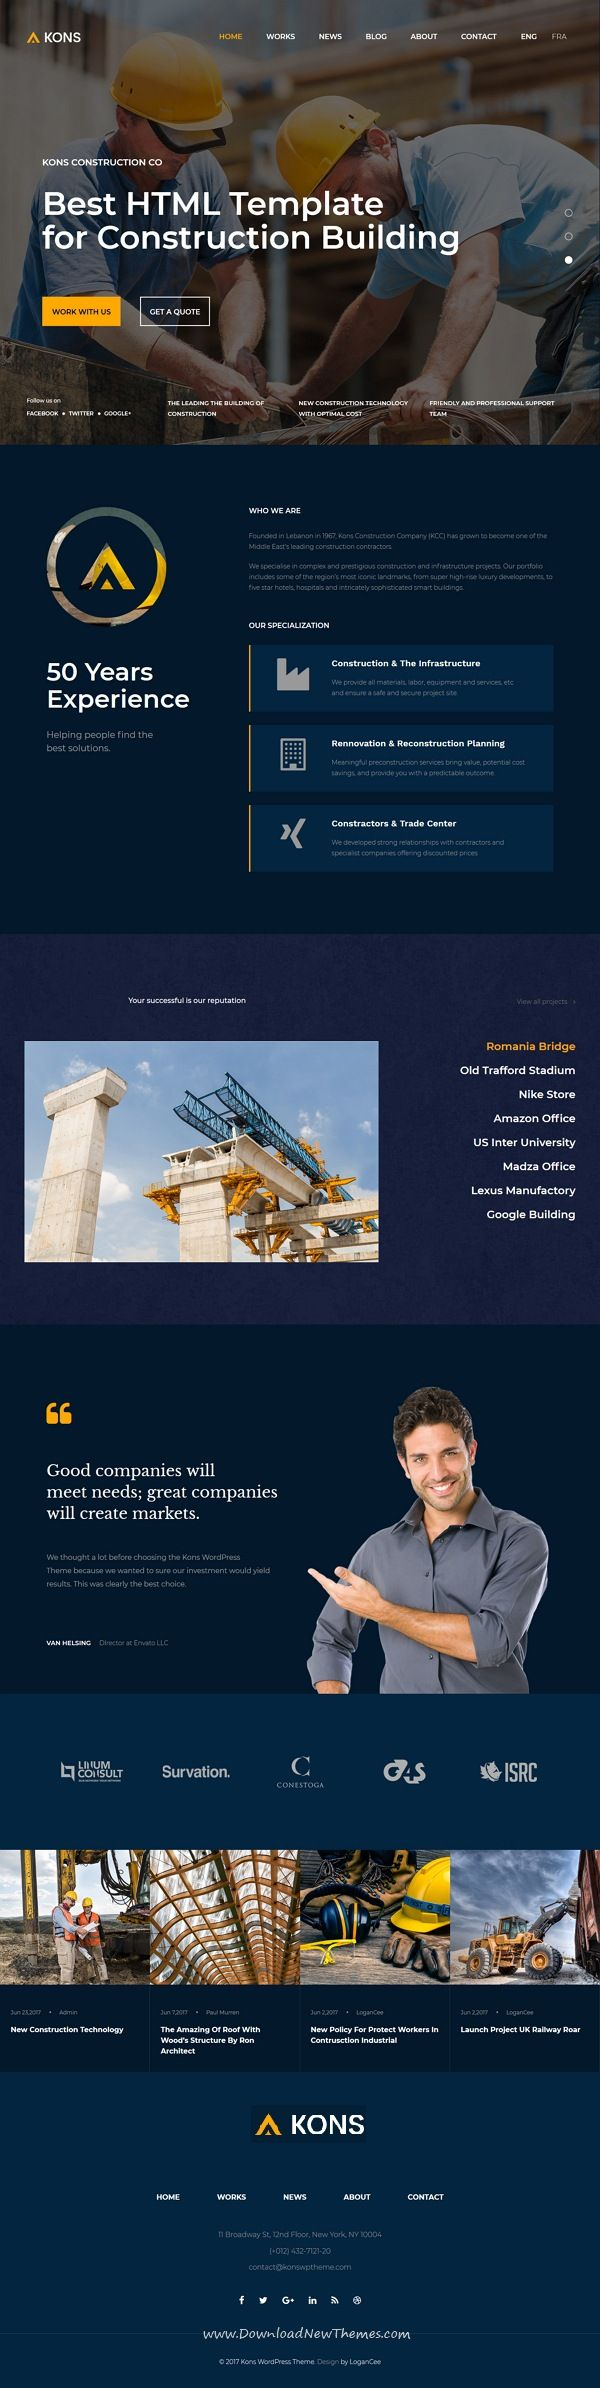 Kons Is Clean And Modern Design 6in1 Responsive Bootstrap Html Template For Stunning Construction Architecture And Templates Construction Building Companies